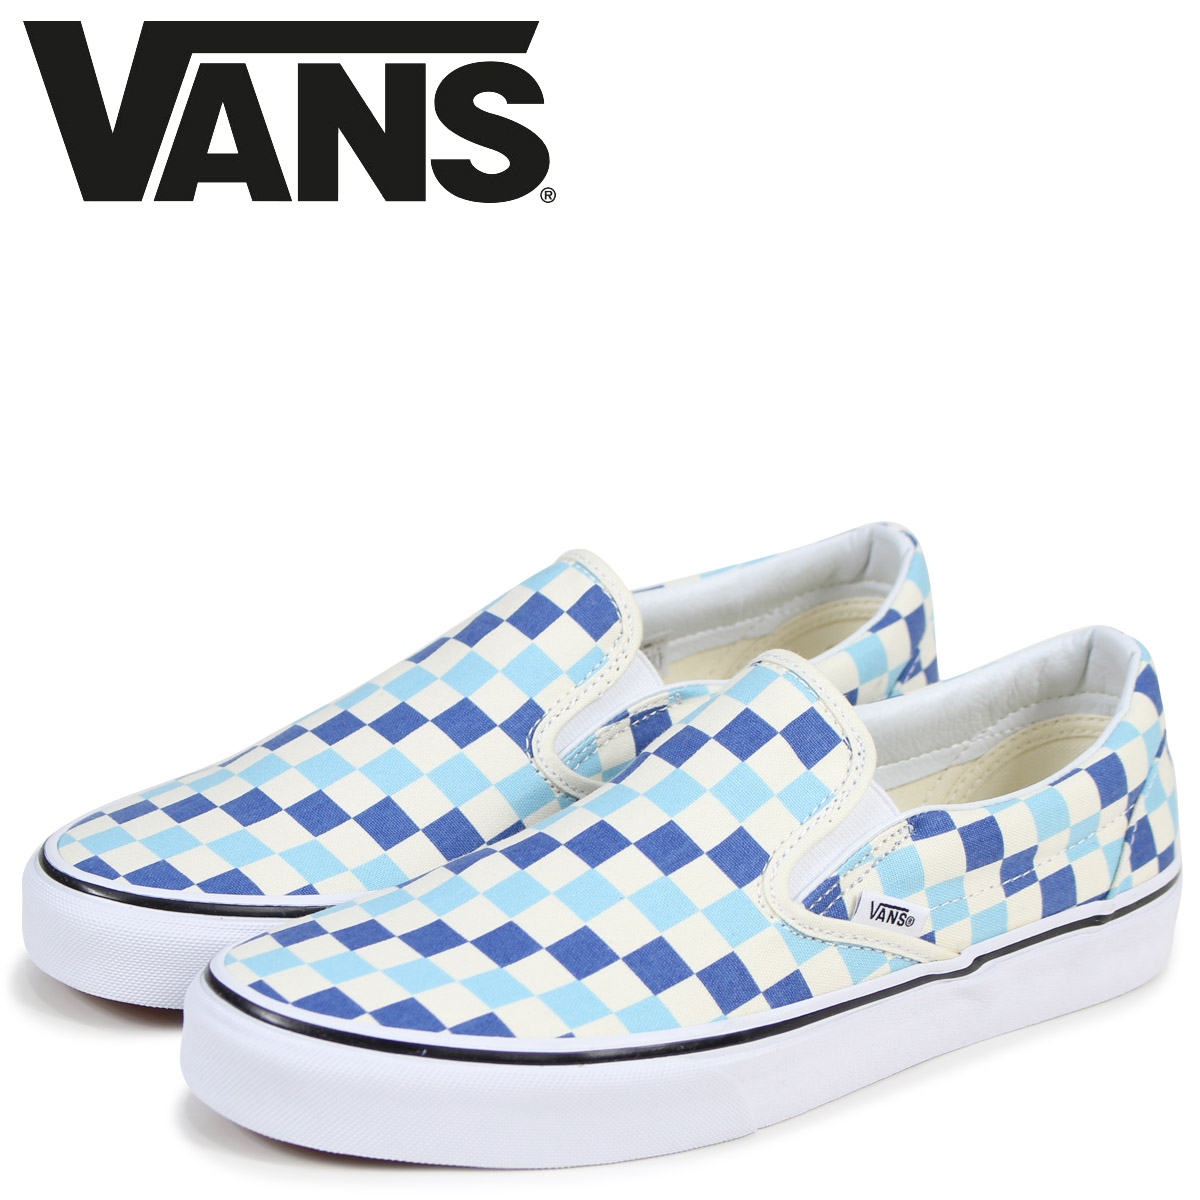 0d8b592327 Sugar Online Shop  Vans slip-ons sneakers men VANS station wagons ...